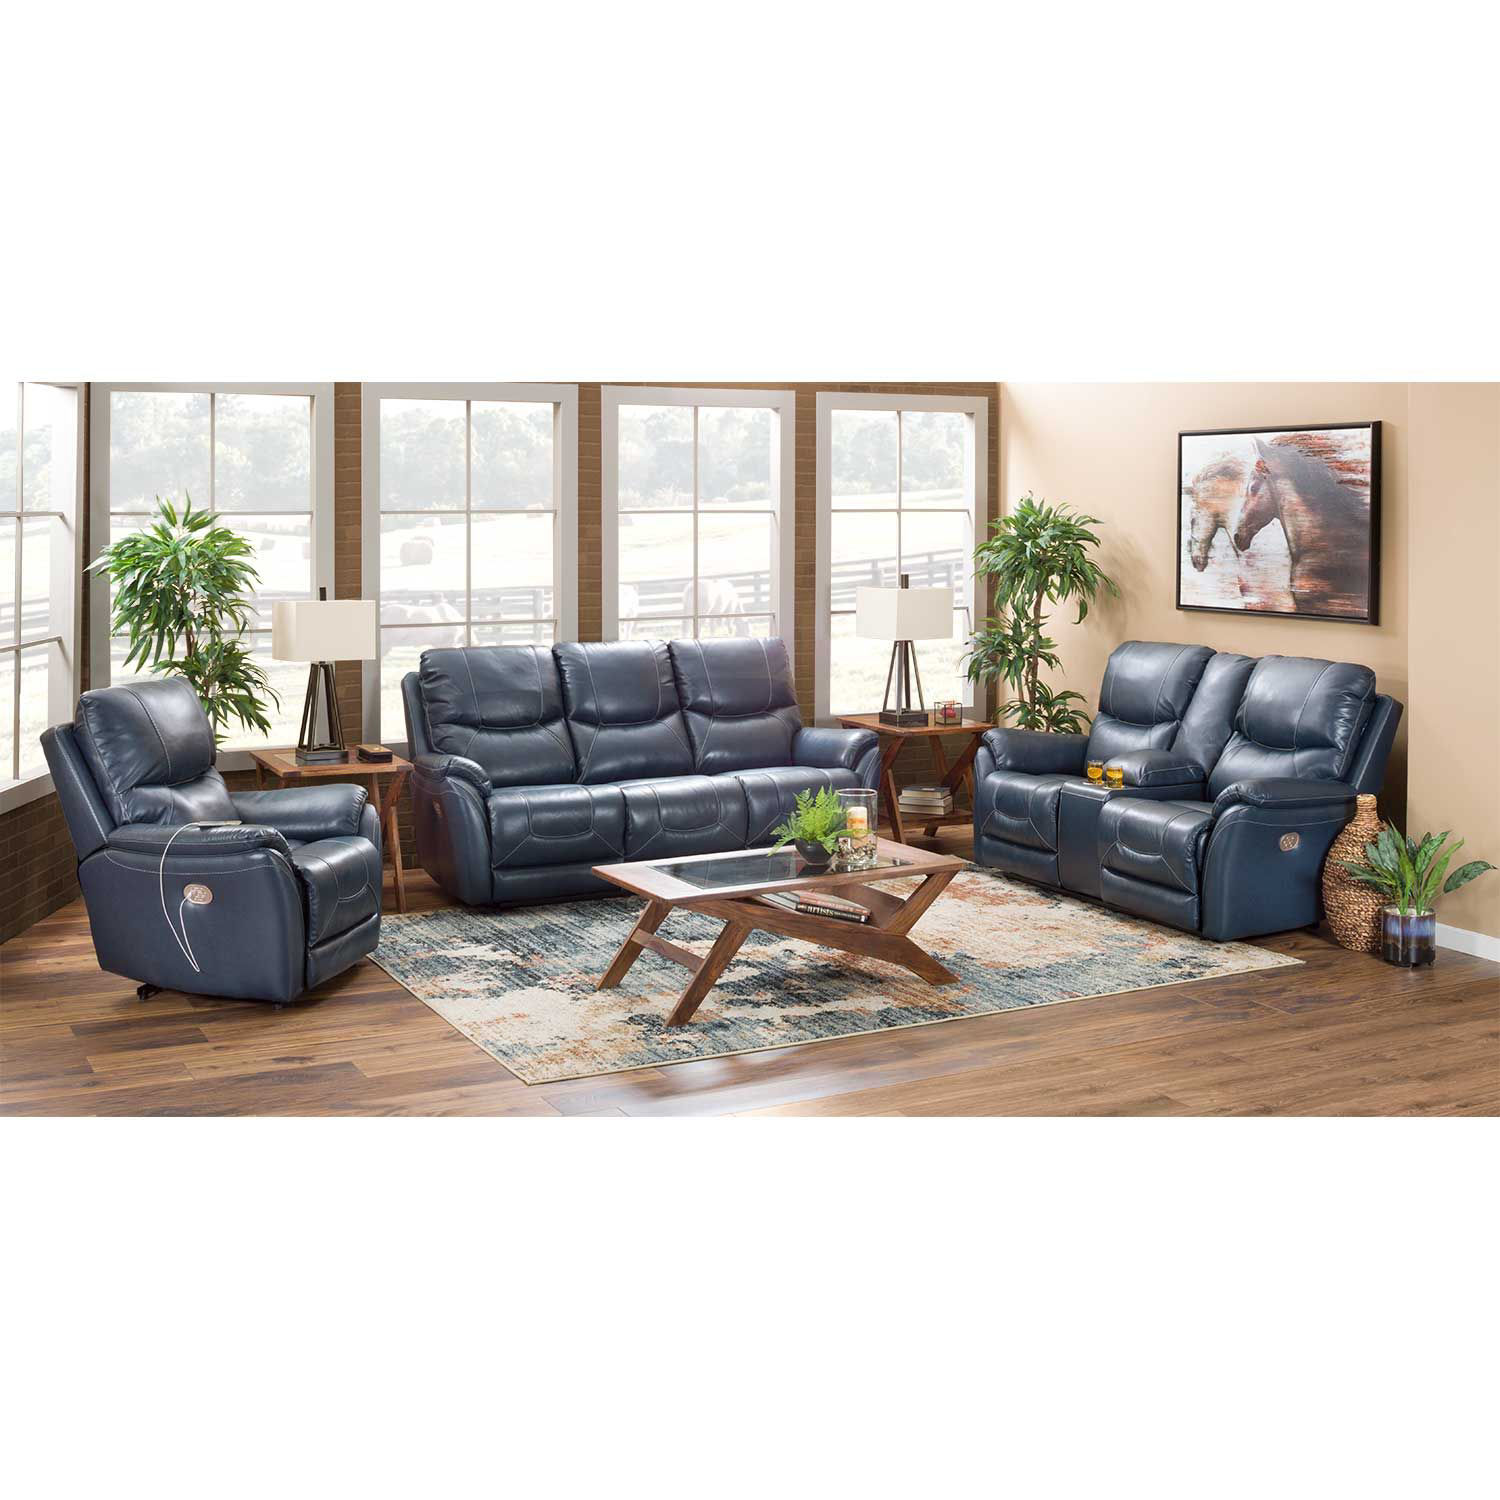 Picture of Dellington Marine Power Reclining Sofa with Adjustable Headrest and Lumbar